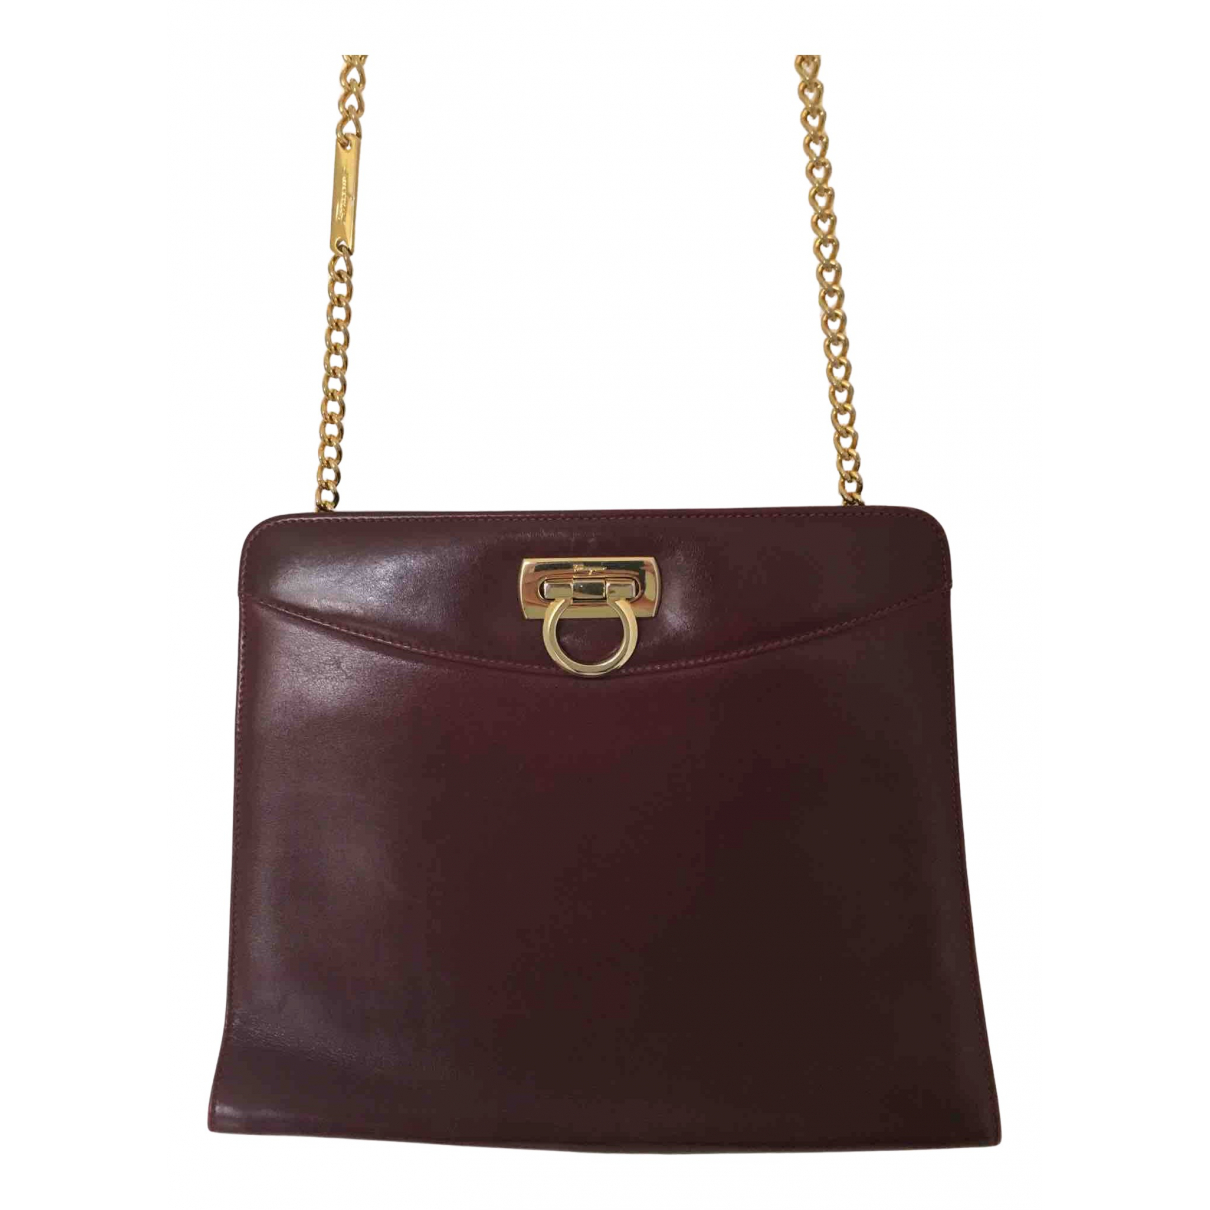 Salvatore Ferragamo N Burgundy Leather handbag for Women N